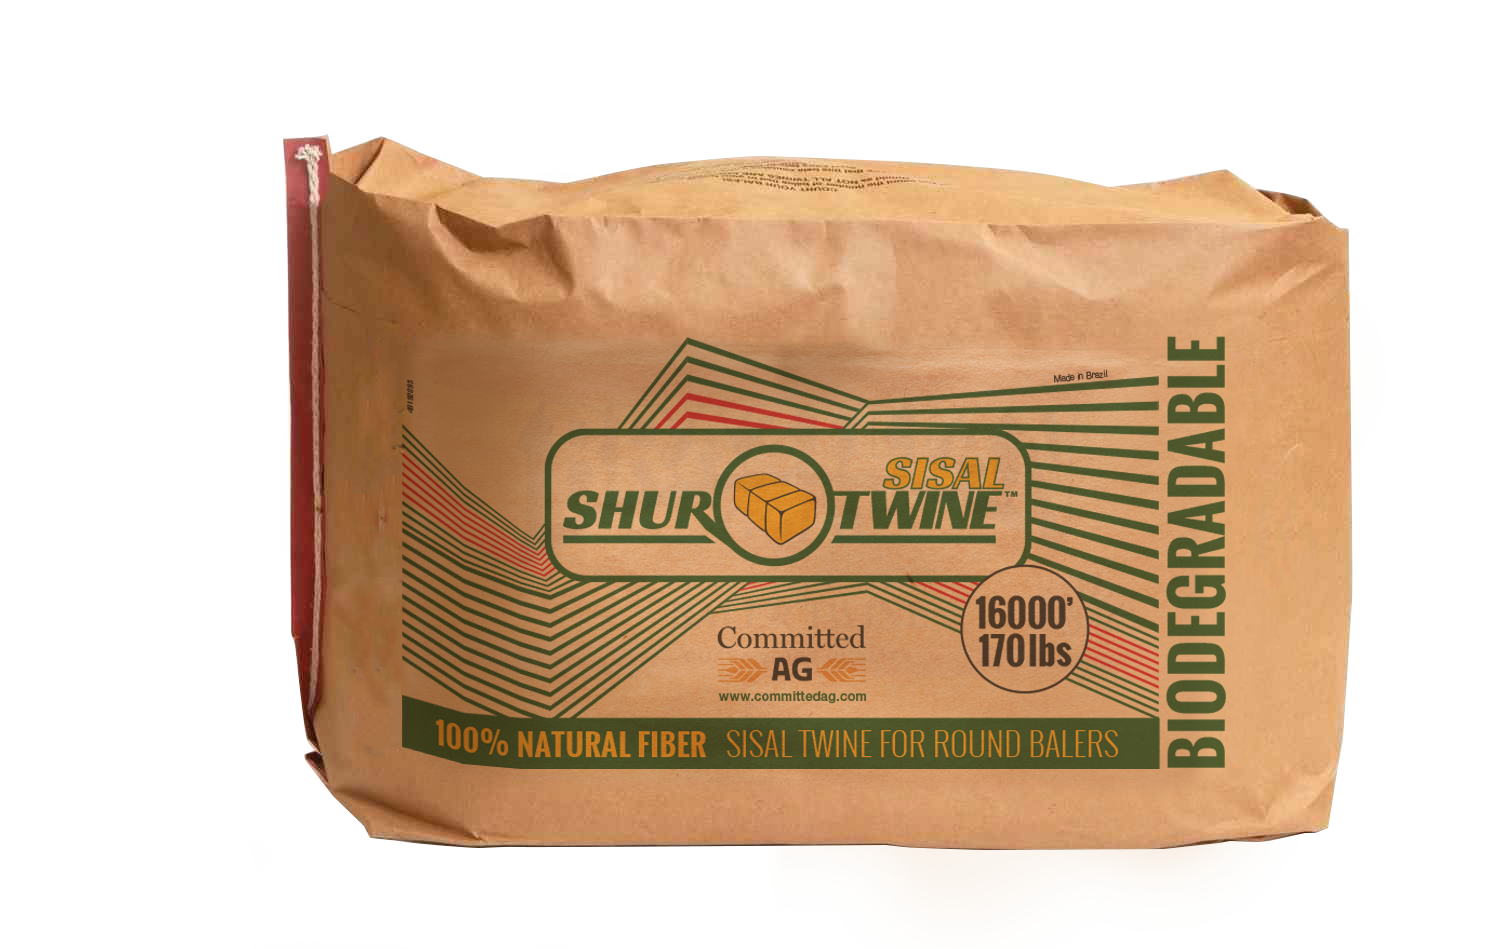 Committed AG | ShurTwine Sisal